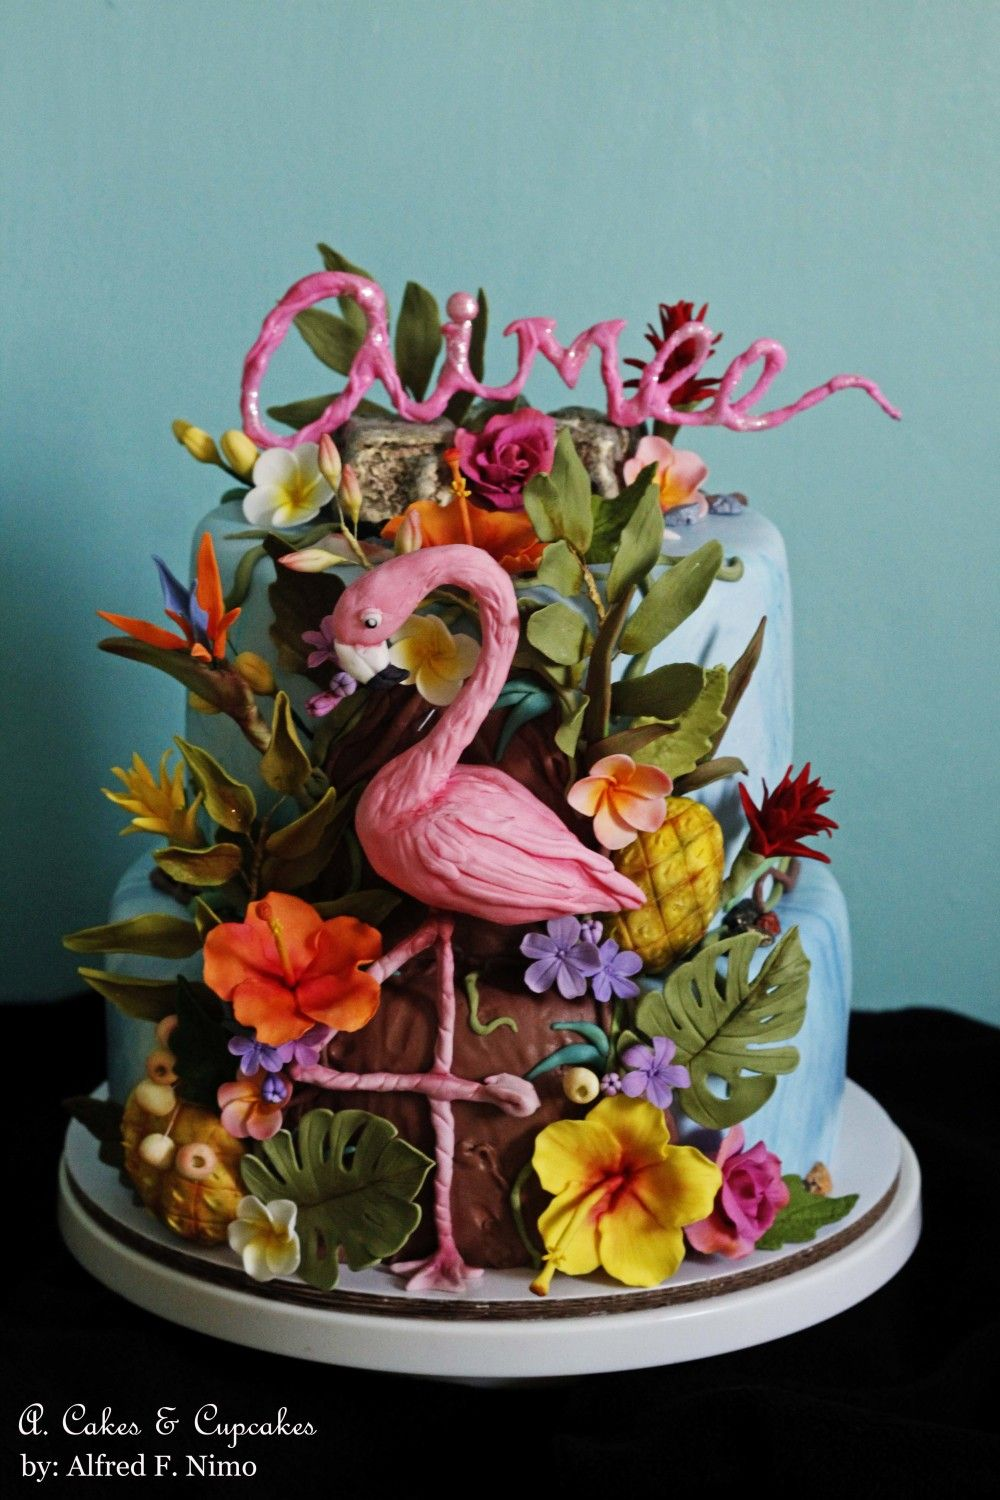 Aimee's Tropical birthday cake by Alfred (A. Cakes